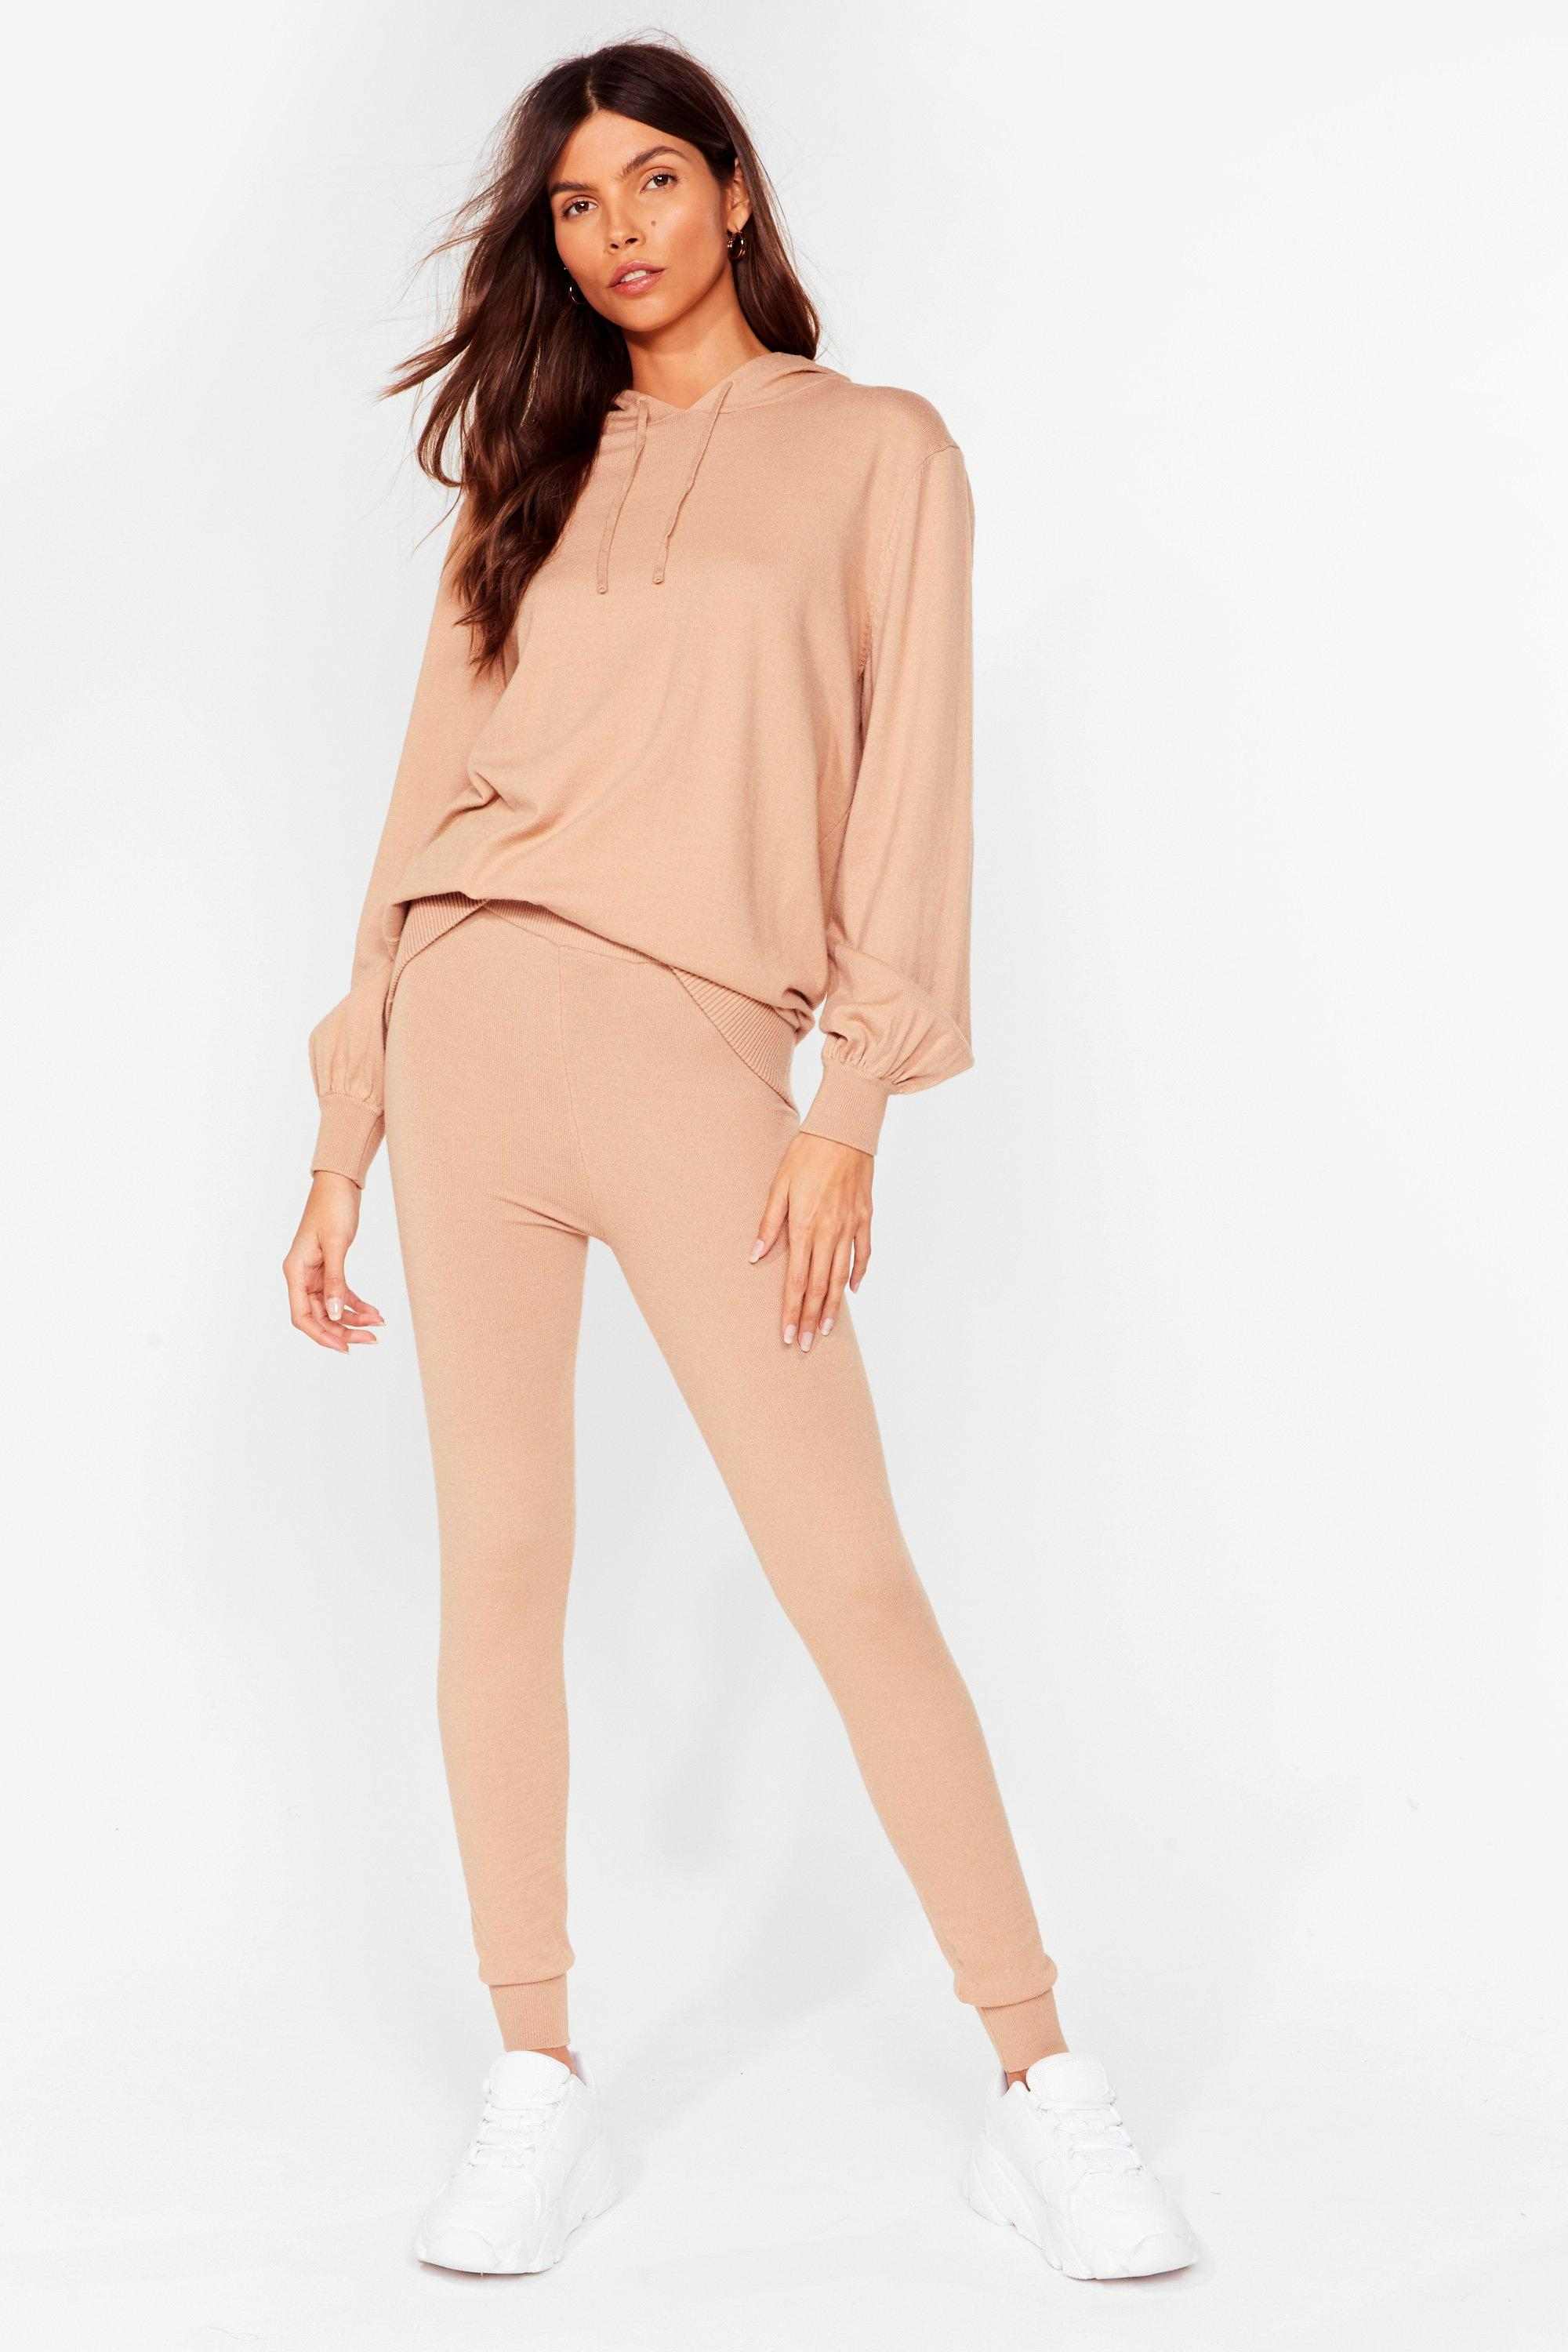 Image of Womens Leave 'Em to Knit Hoodie and Leggings Lounge Set - Camel